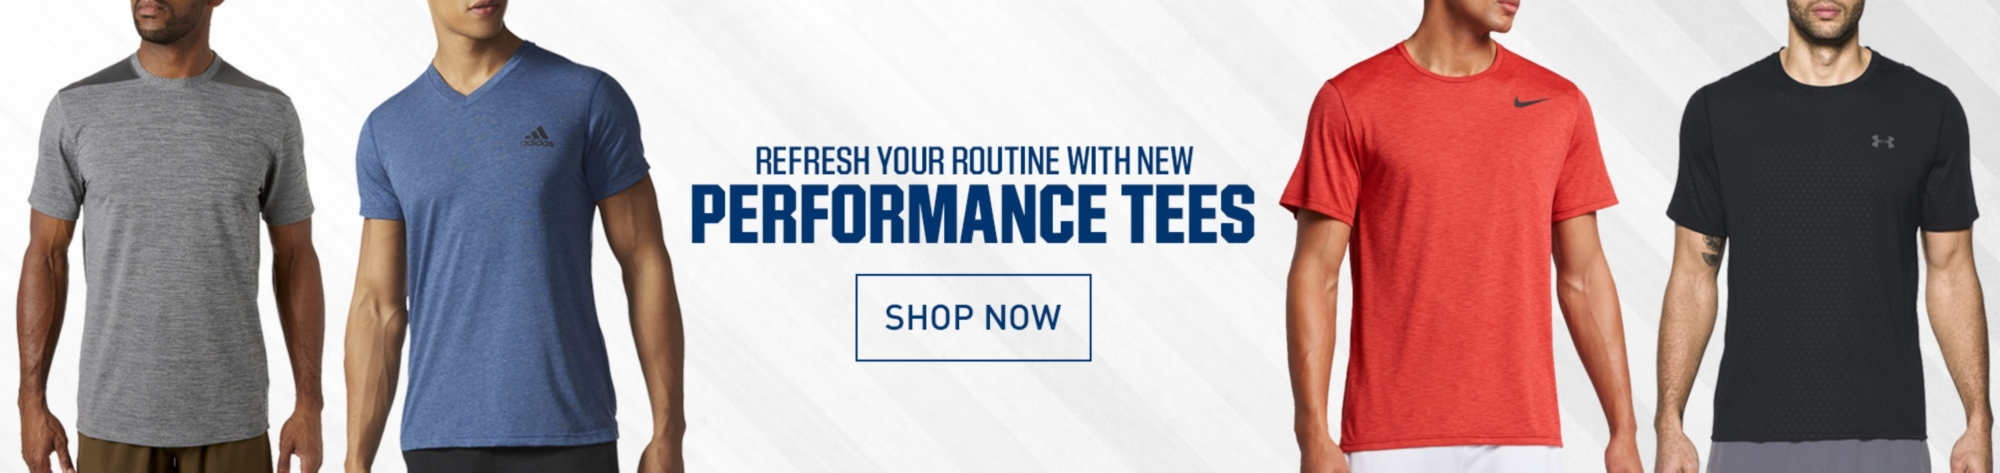 Men's New Performance Tees